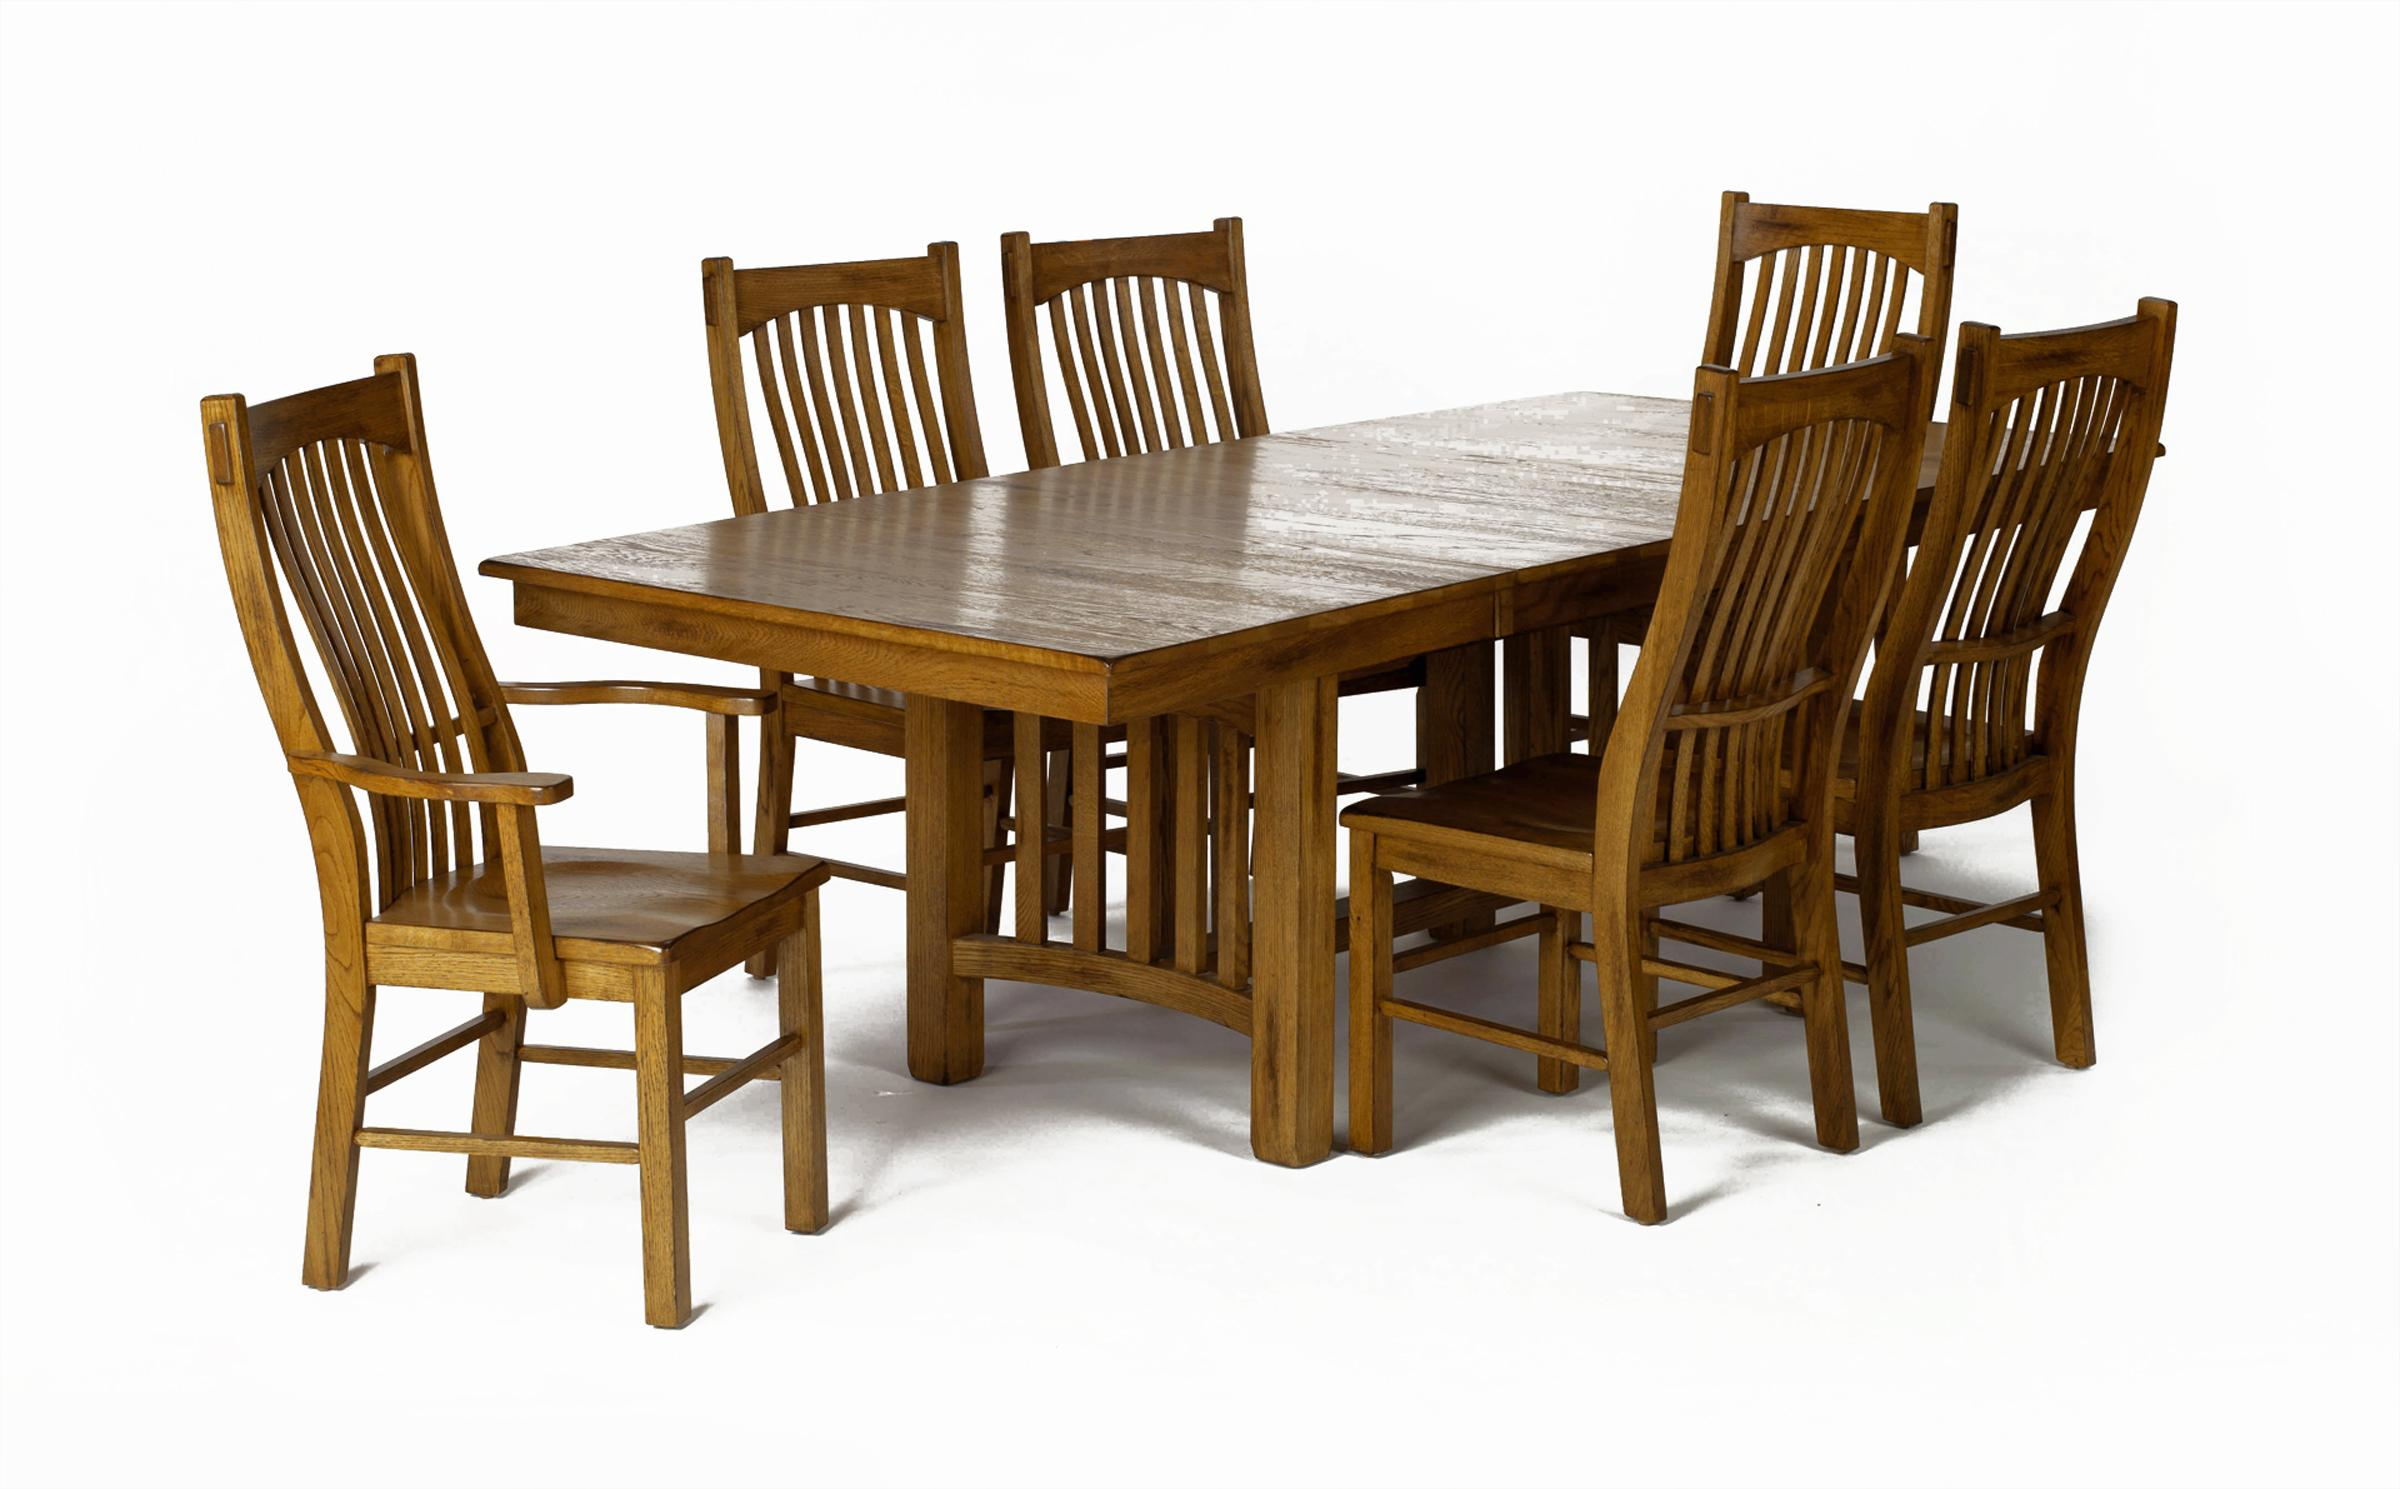 AAmerica Laurelhurst Dining Table & Chair Set - Item Number: LAU-RO-6-32-0+2x2-76+4x2-75